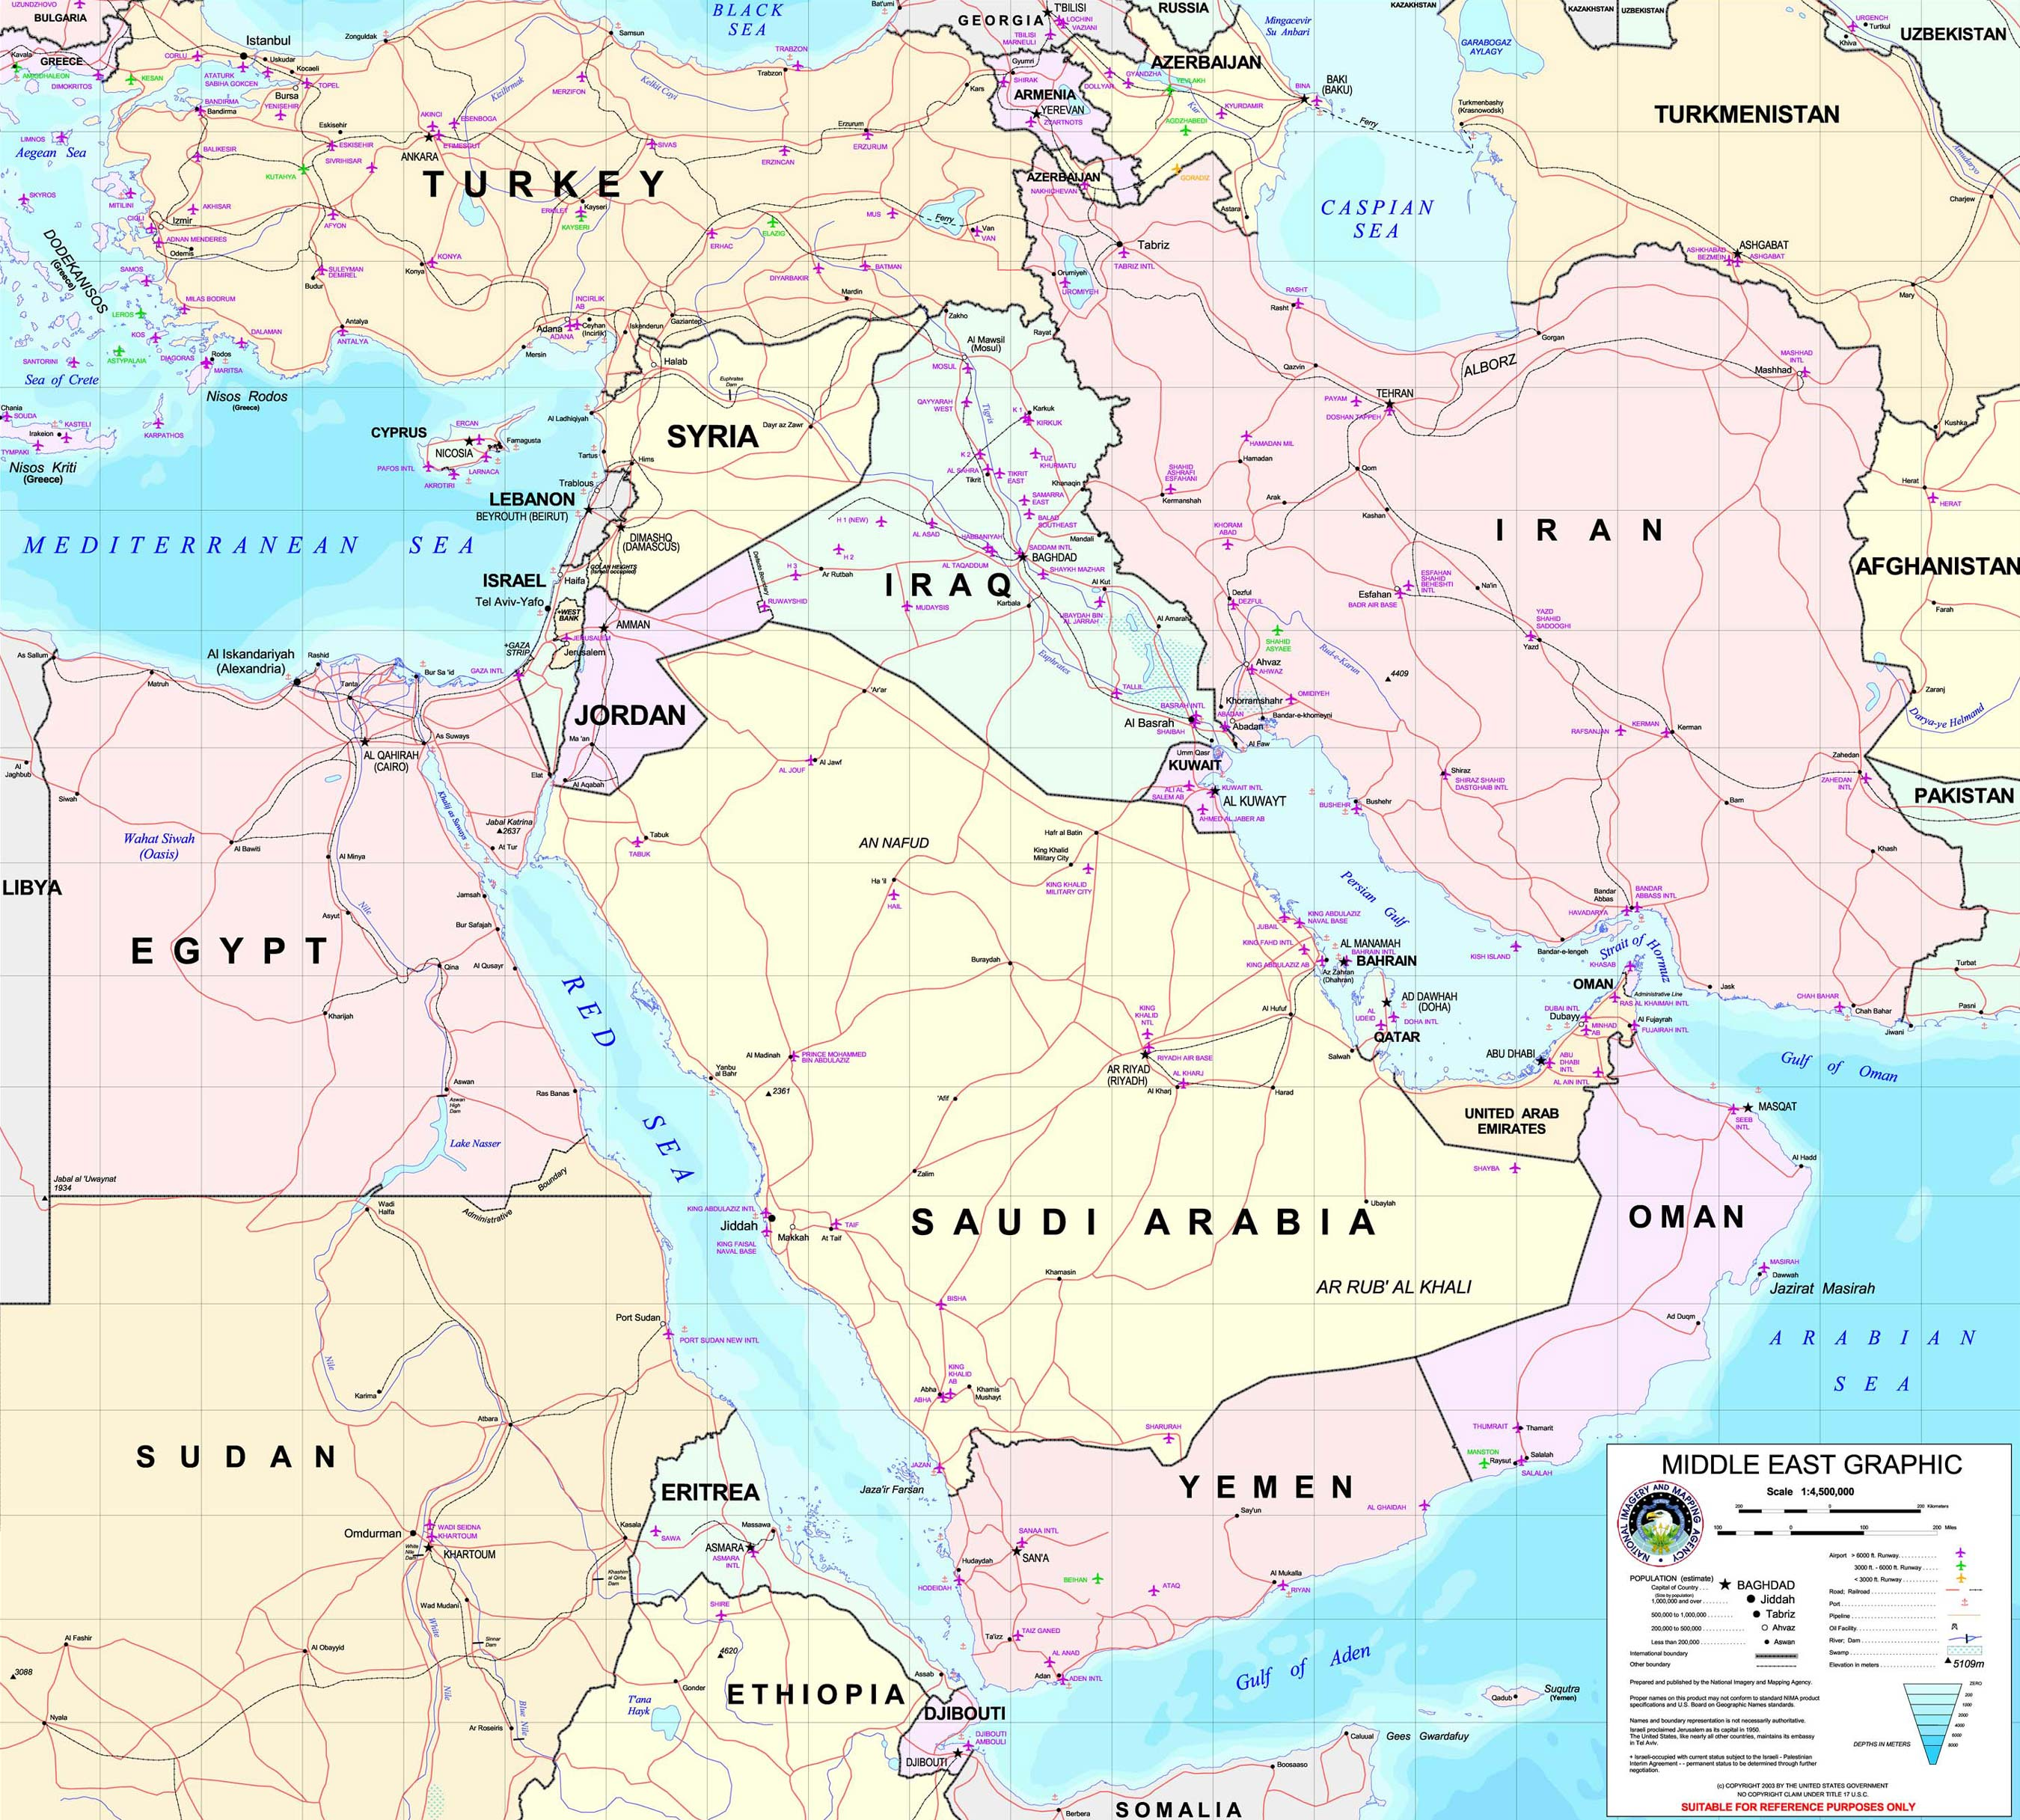 Map of Middle East Persian Gulf